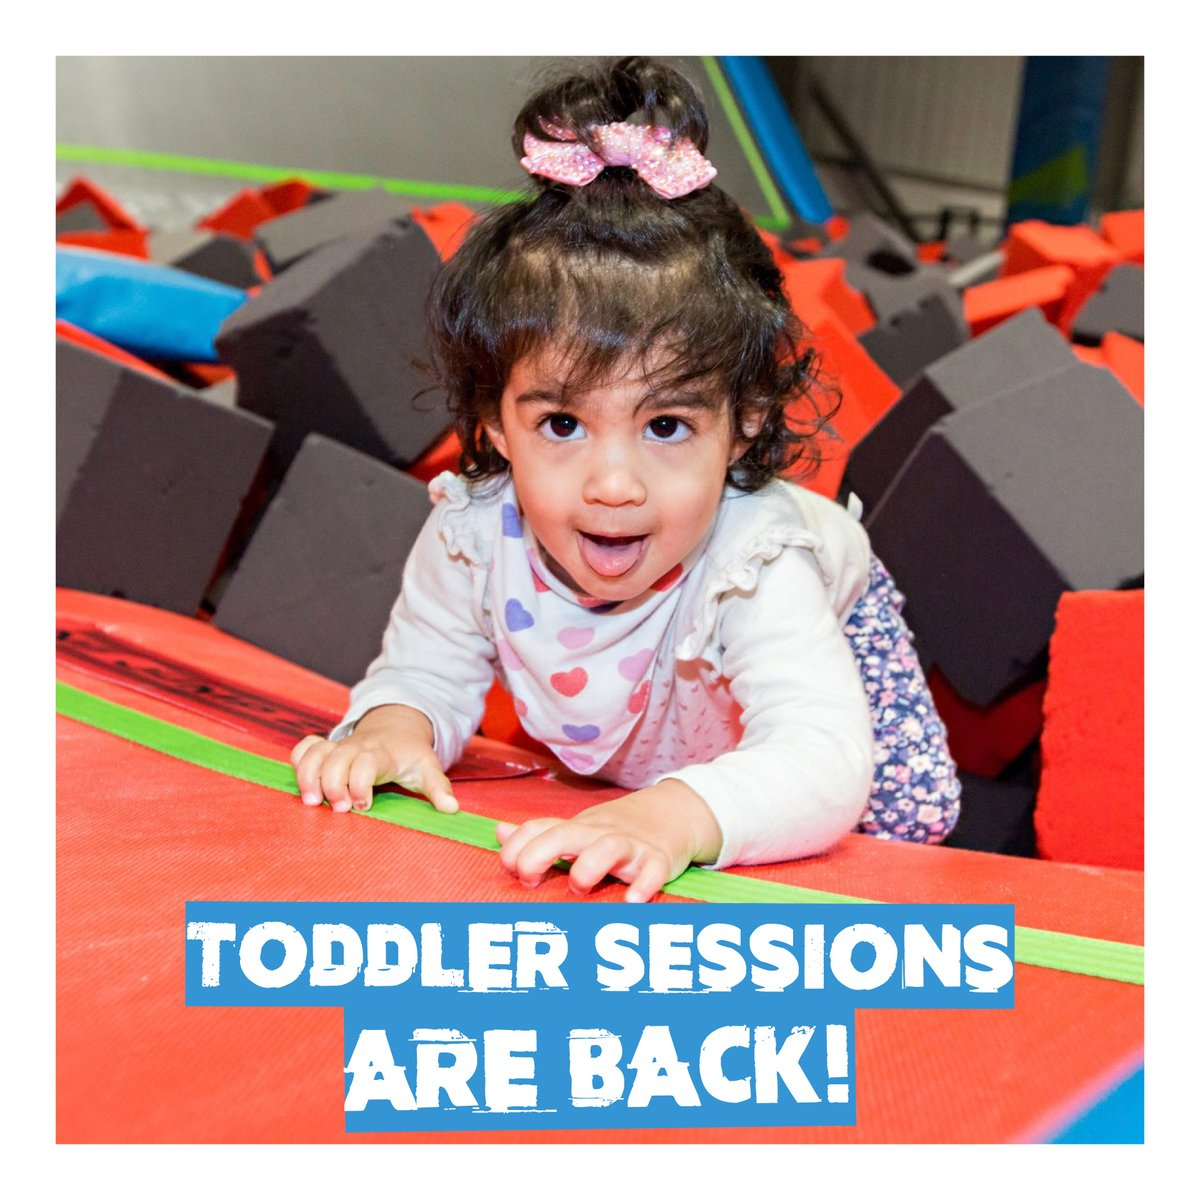 TODDLER SESSIONS ARE BACK  Come along at 10am every Sunday morning to let your little ones burn off some energy!  Book a toddler jump now http://rushuk.com    #rushuk #rushuktrampolinepark #feeltherush #trampolinepark #weareopen #toddlers #sundayfundaypic.twitter.com/8waE9XW2uJ